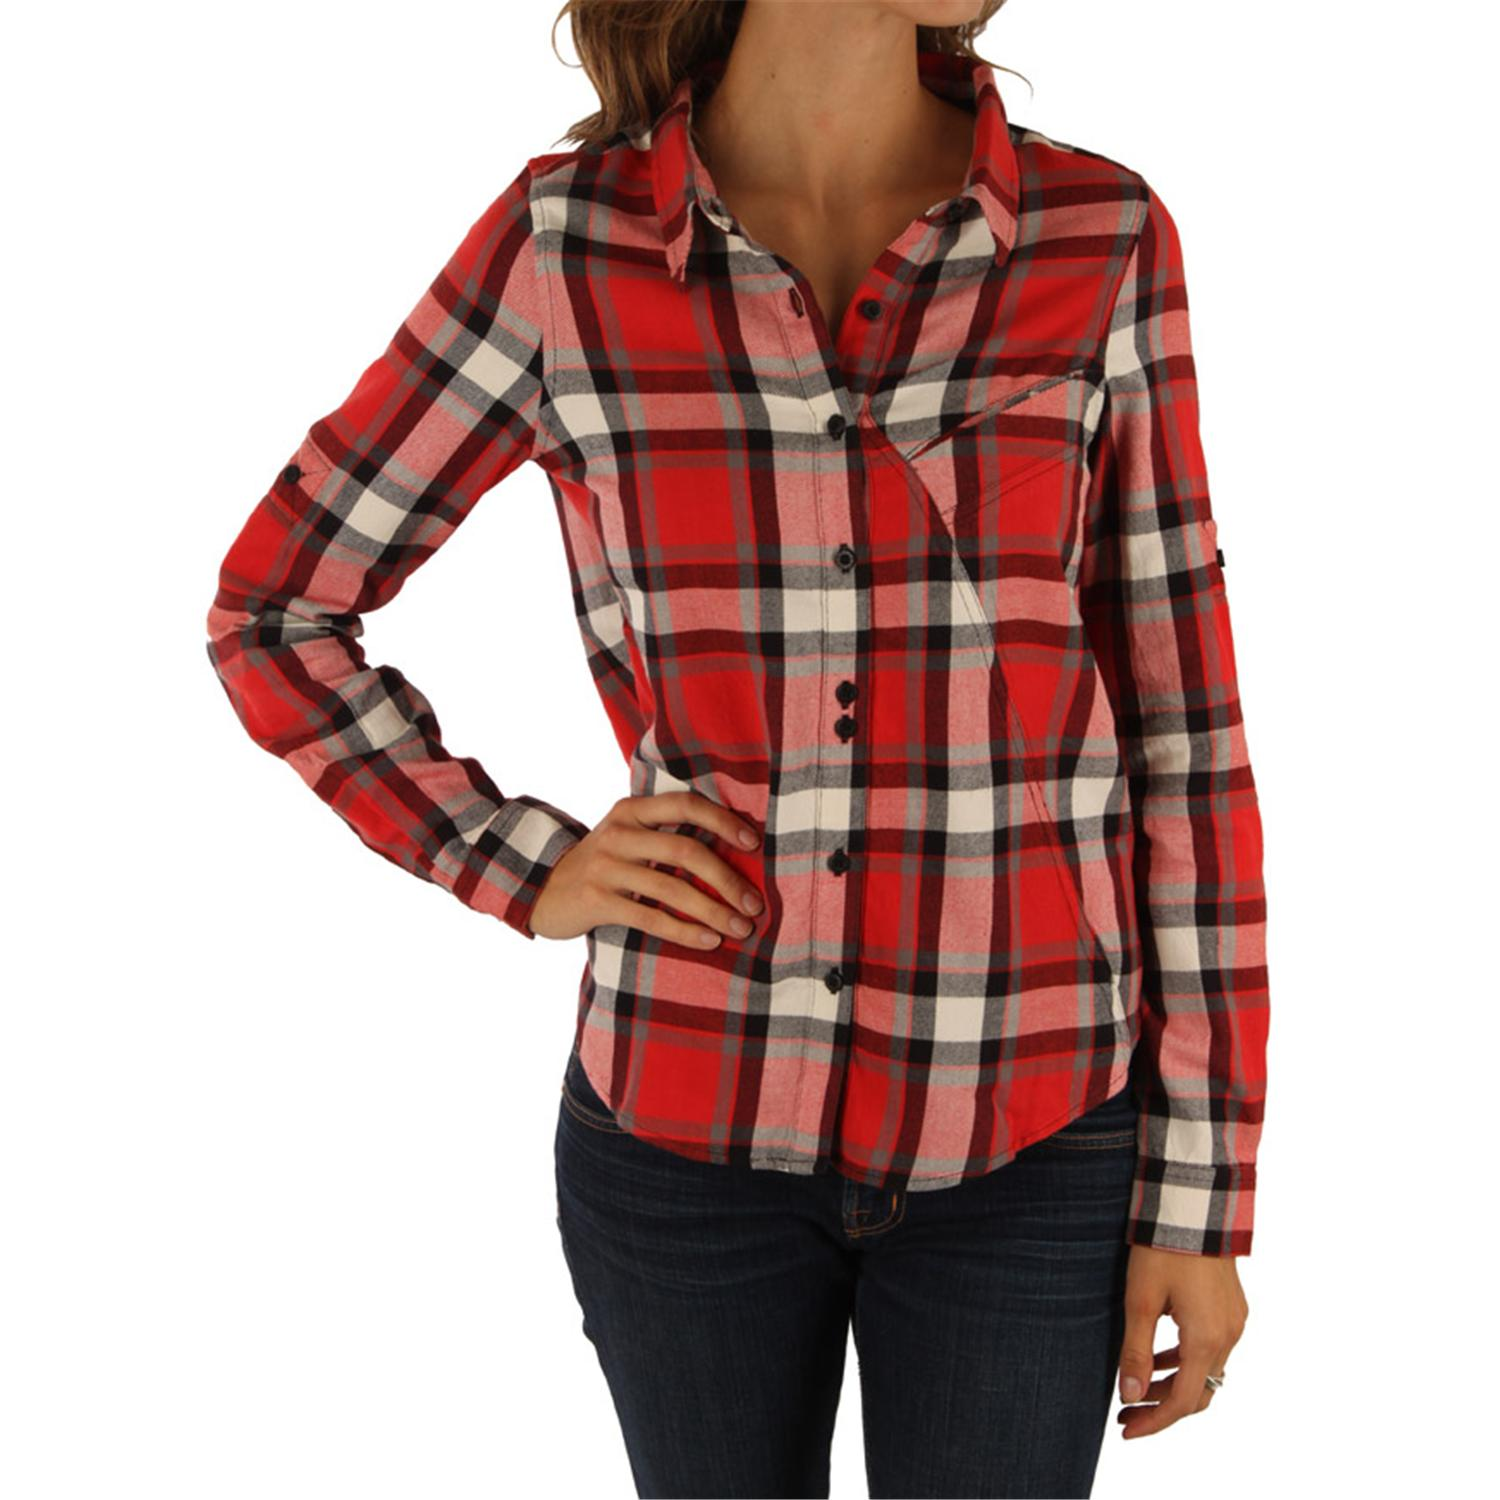 Quiksilver white lies button down shirt women 39 s evo outlet Womens red tartan plaid shirt